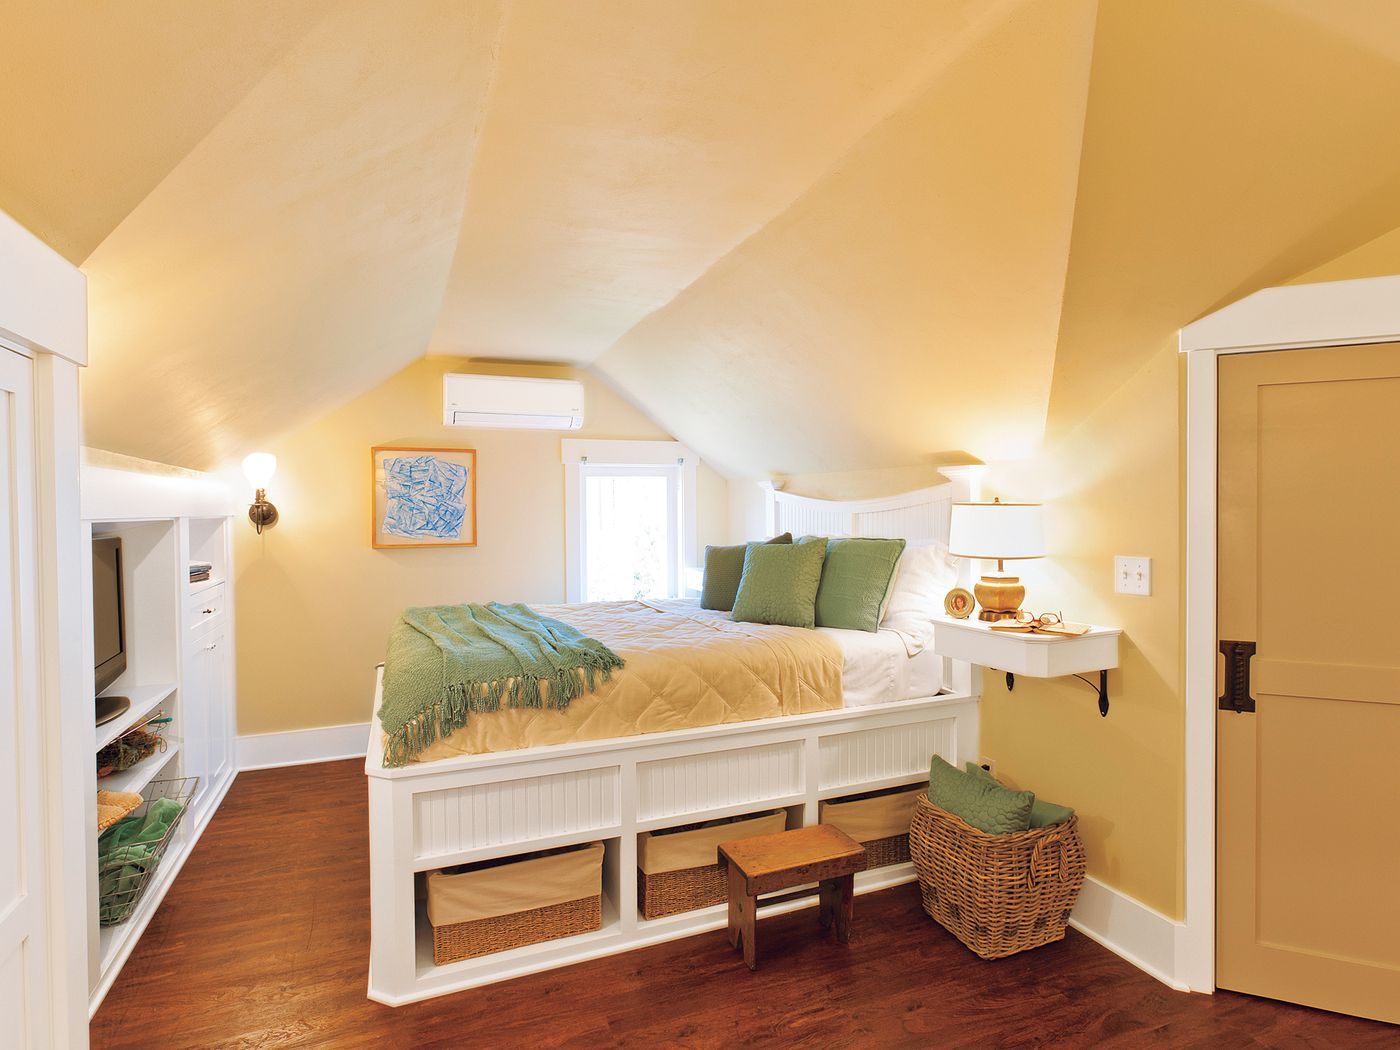 12 Ways to Turn Unused Space Into the Rooms You Need - This Old House